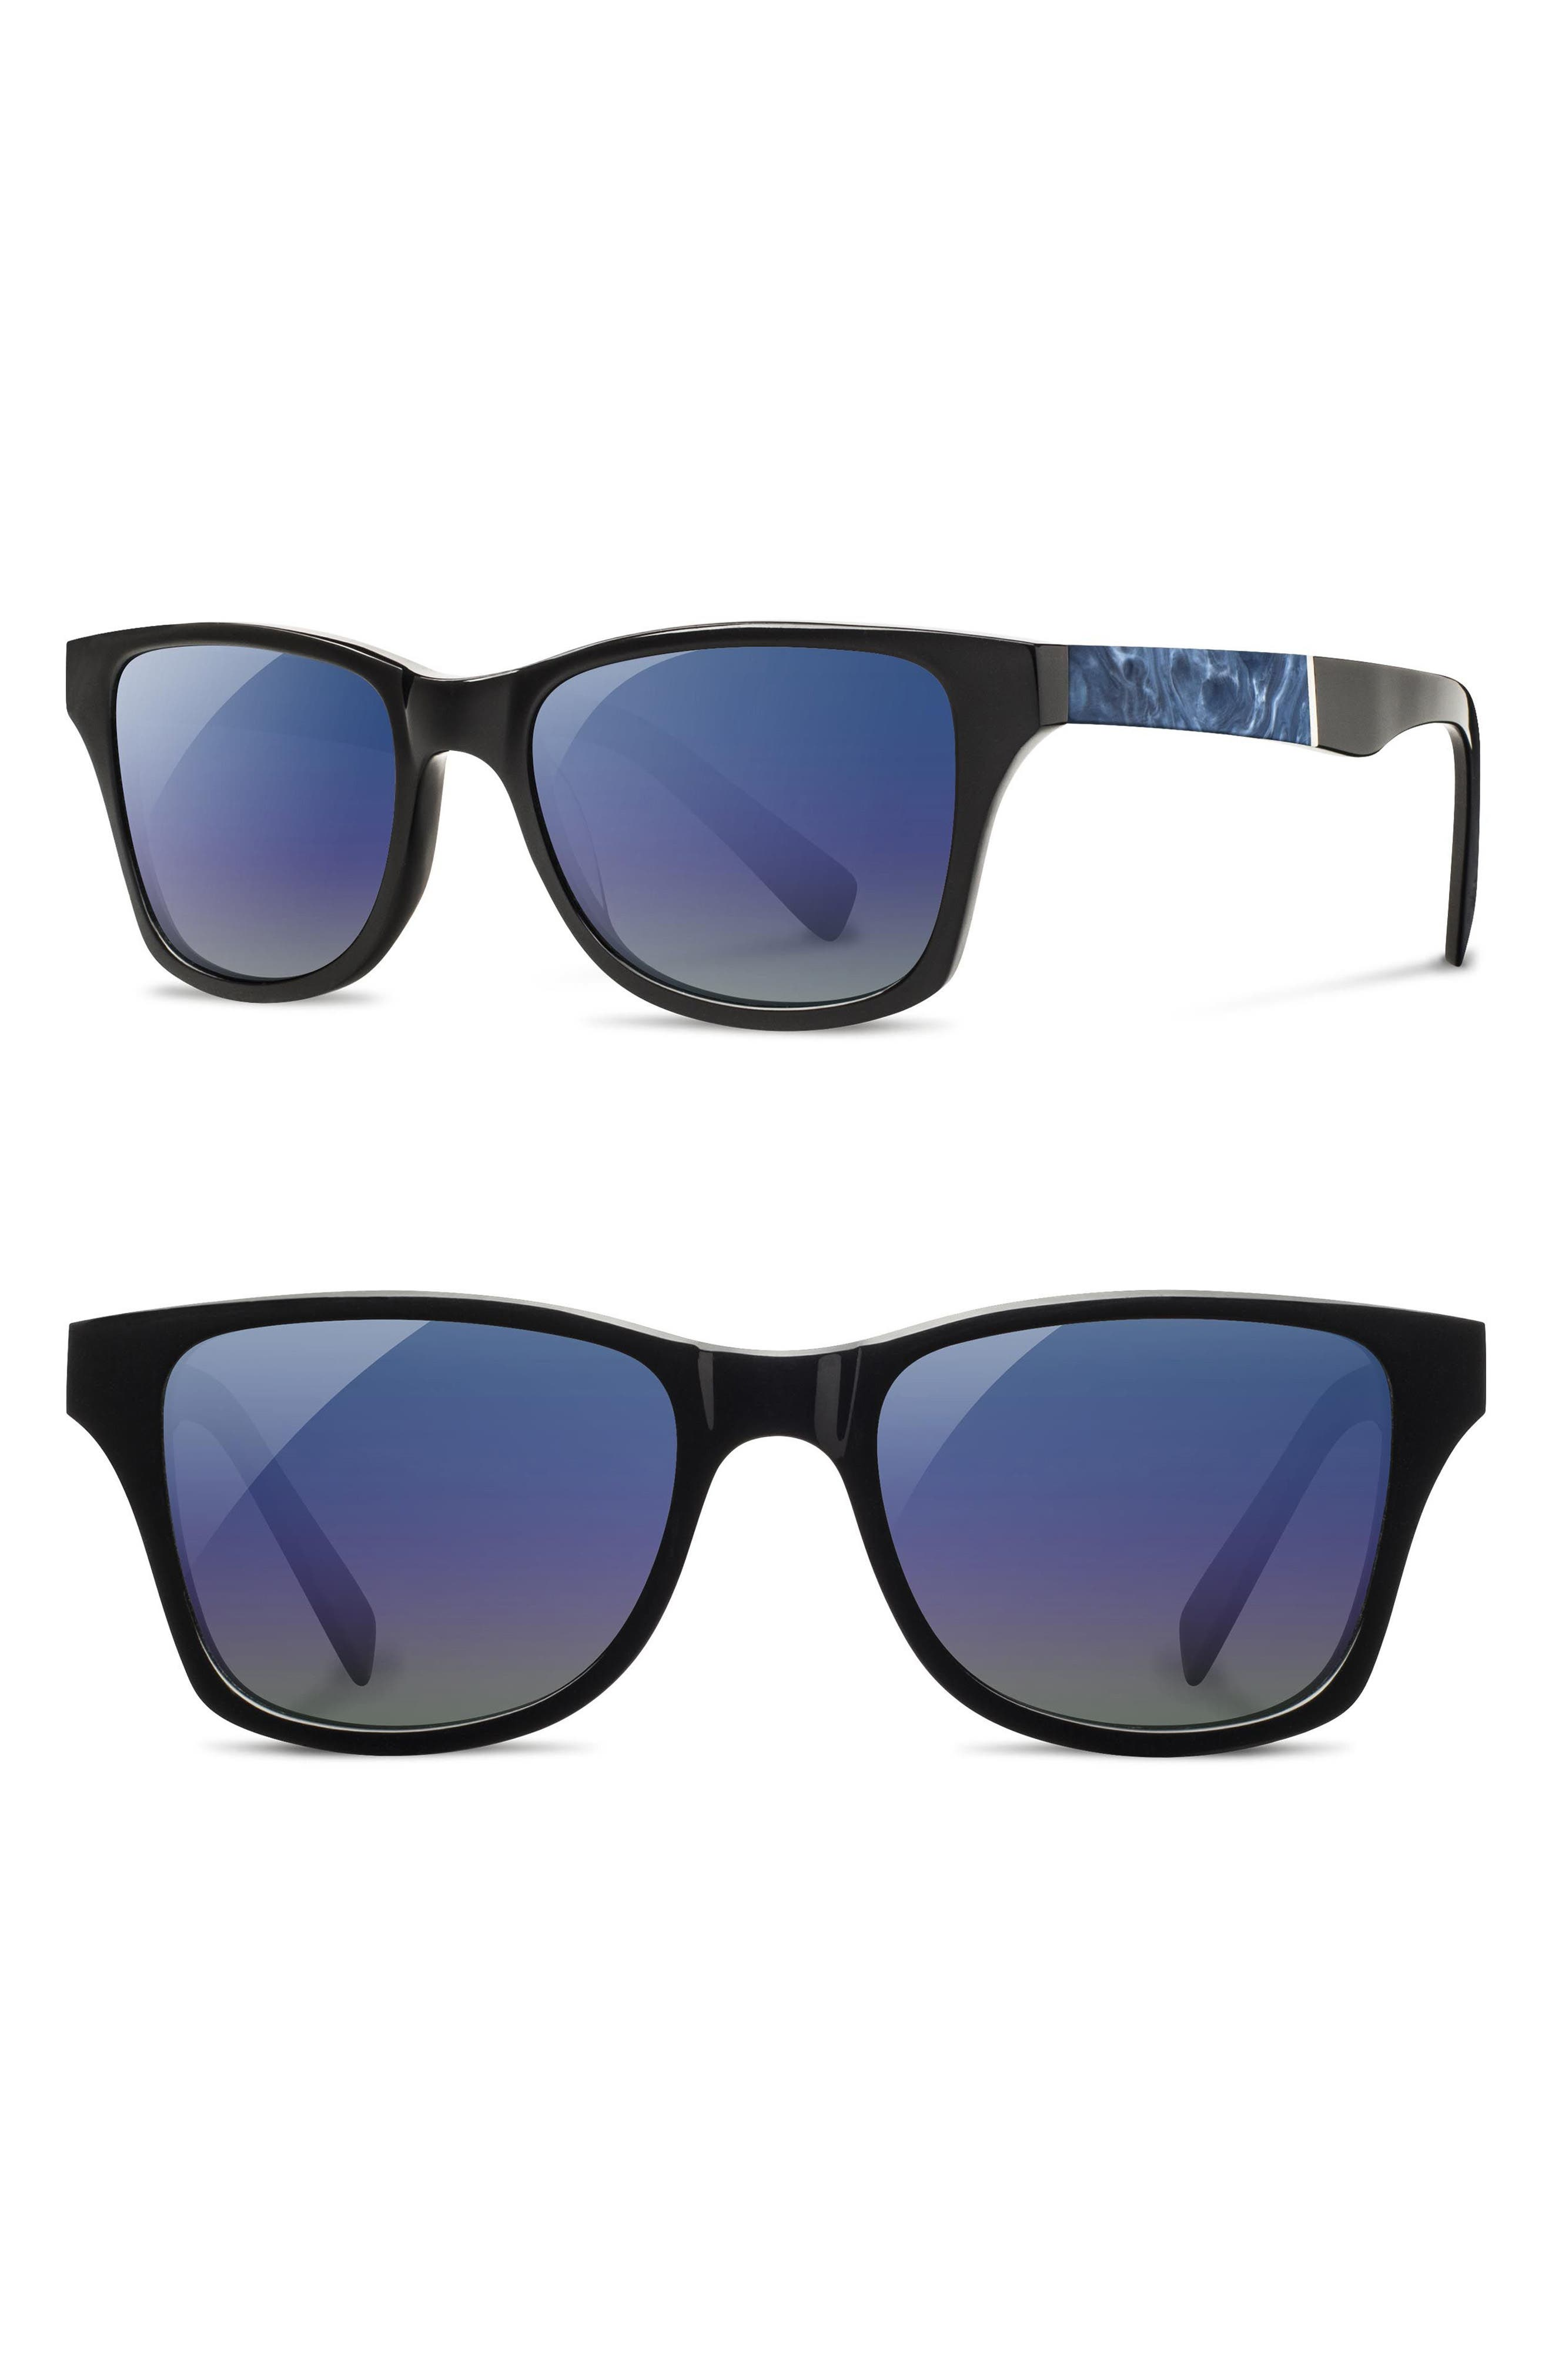 'Canby' 53mm Polarized Sunglasses,                             Main thumbnail 1, color,                             Black/ Surf Resin/ Blue